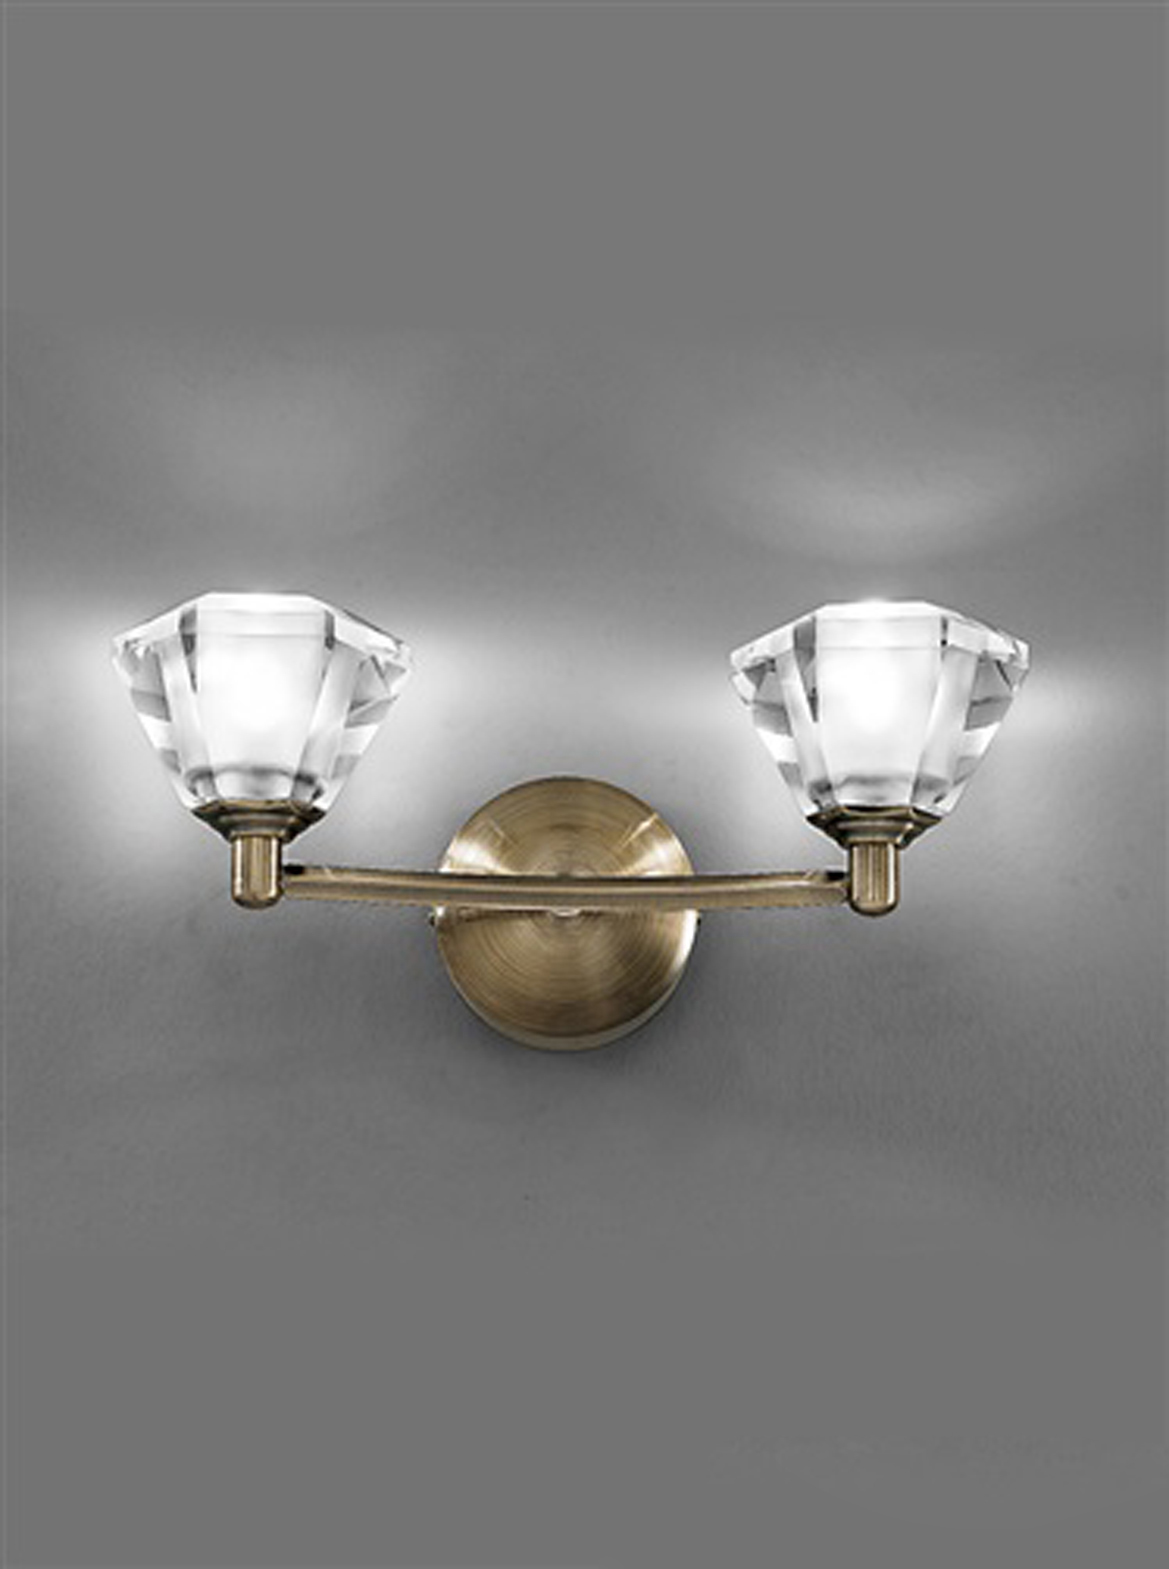 Franklite Crystal Wall Lights : Franklite Twista Bronze & Crystal, 2 Light Wall Fitting - FL2163/2 from Easy Lighting